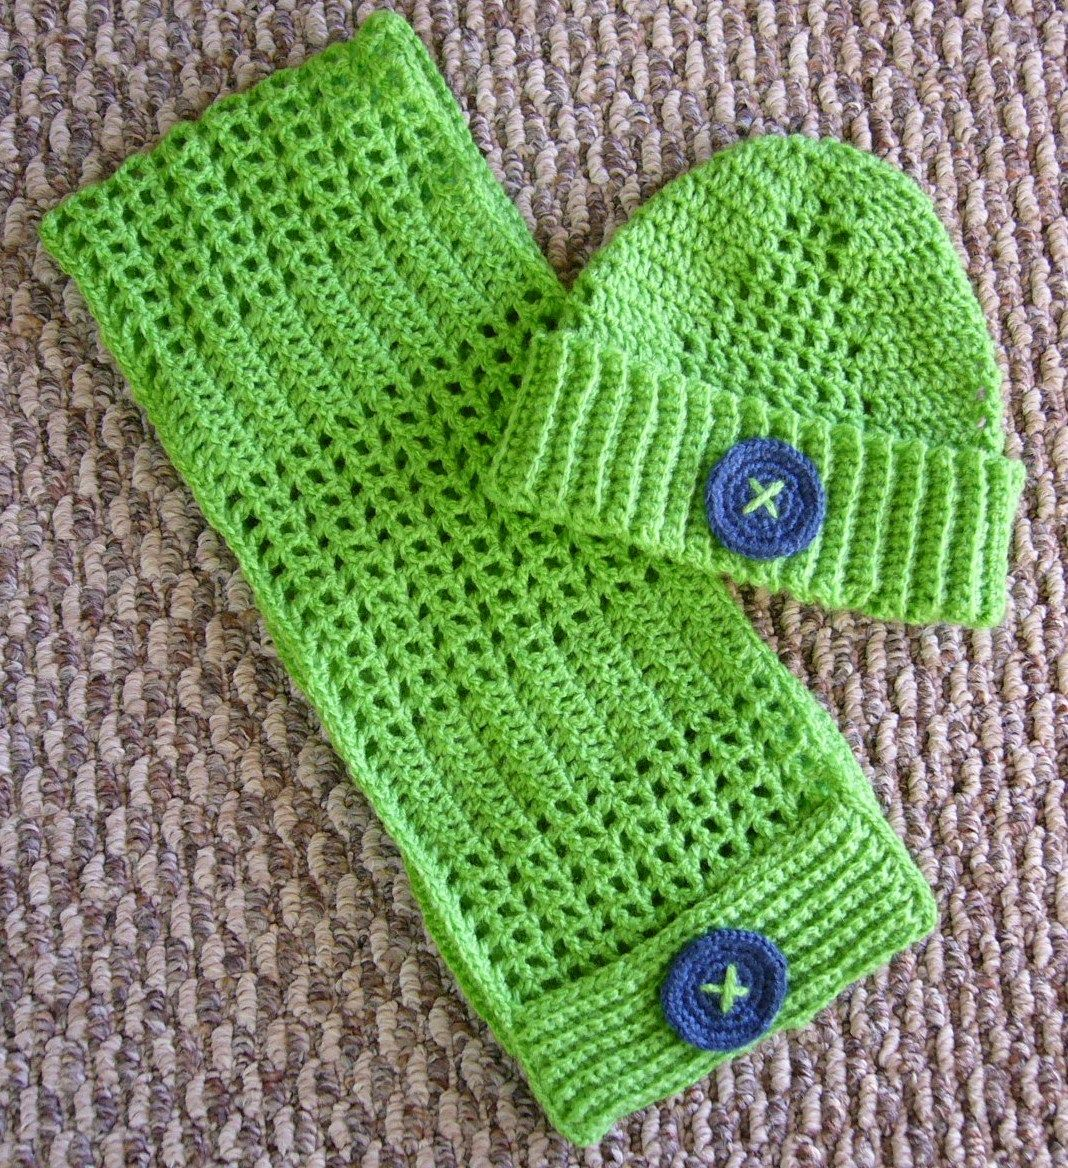 Related image crochet pinterest crochet baby knitting a fun scarf and hat set for the little one in your life my daughter designed it to tuck into an operation christmas child shoe box for a child in crisis dt1010fo